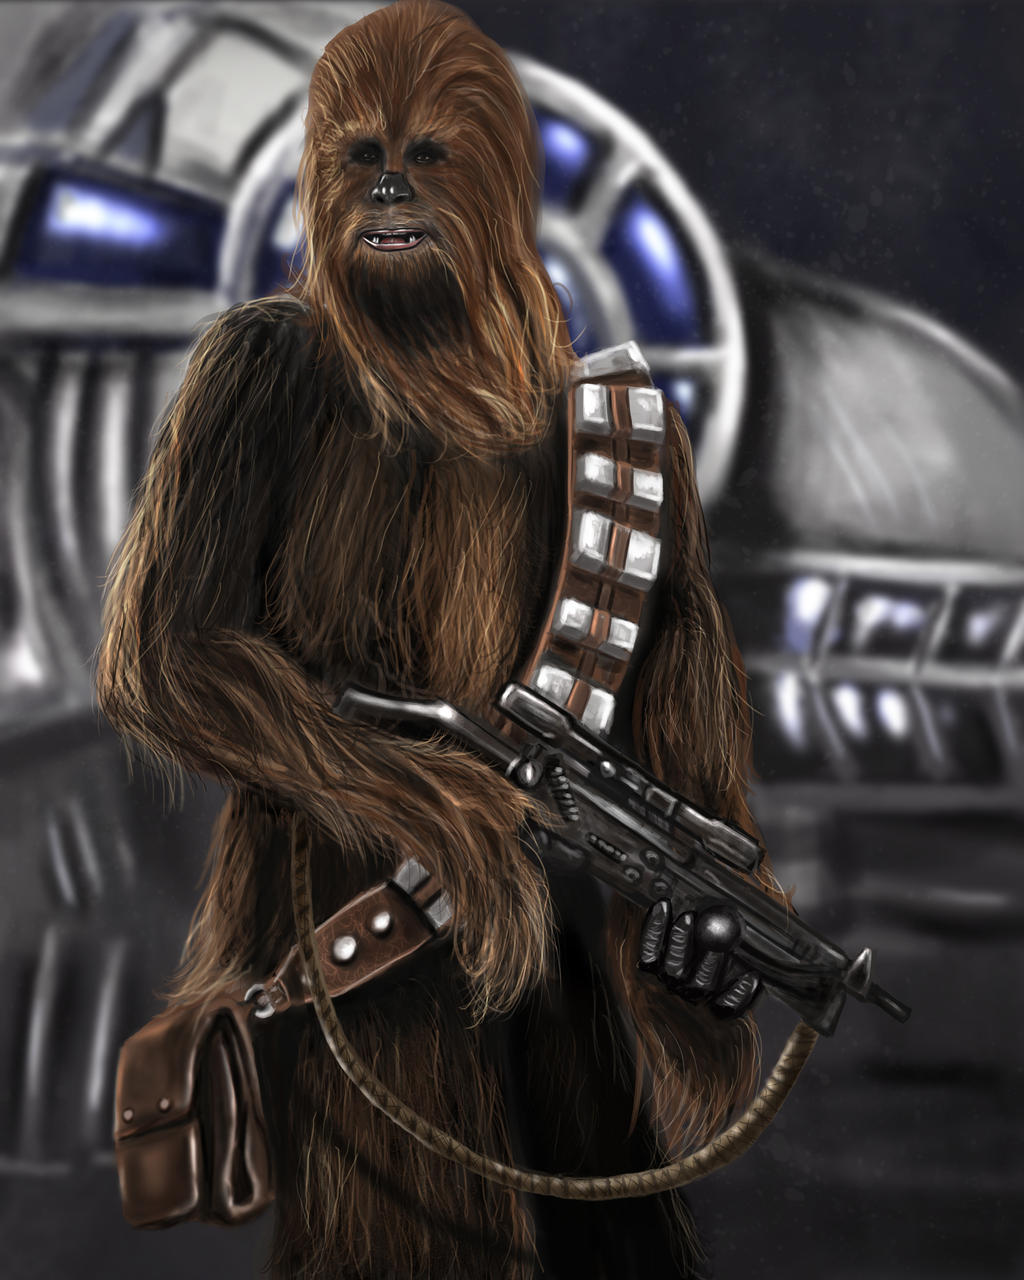 star wars chewbacca wallpaper - photo #20